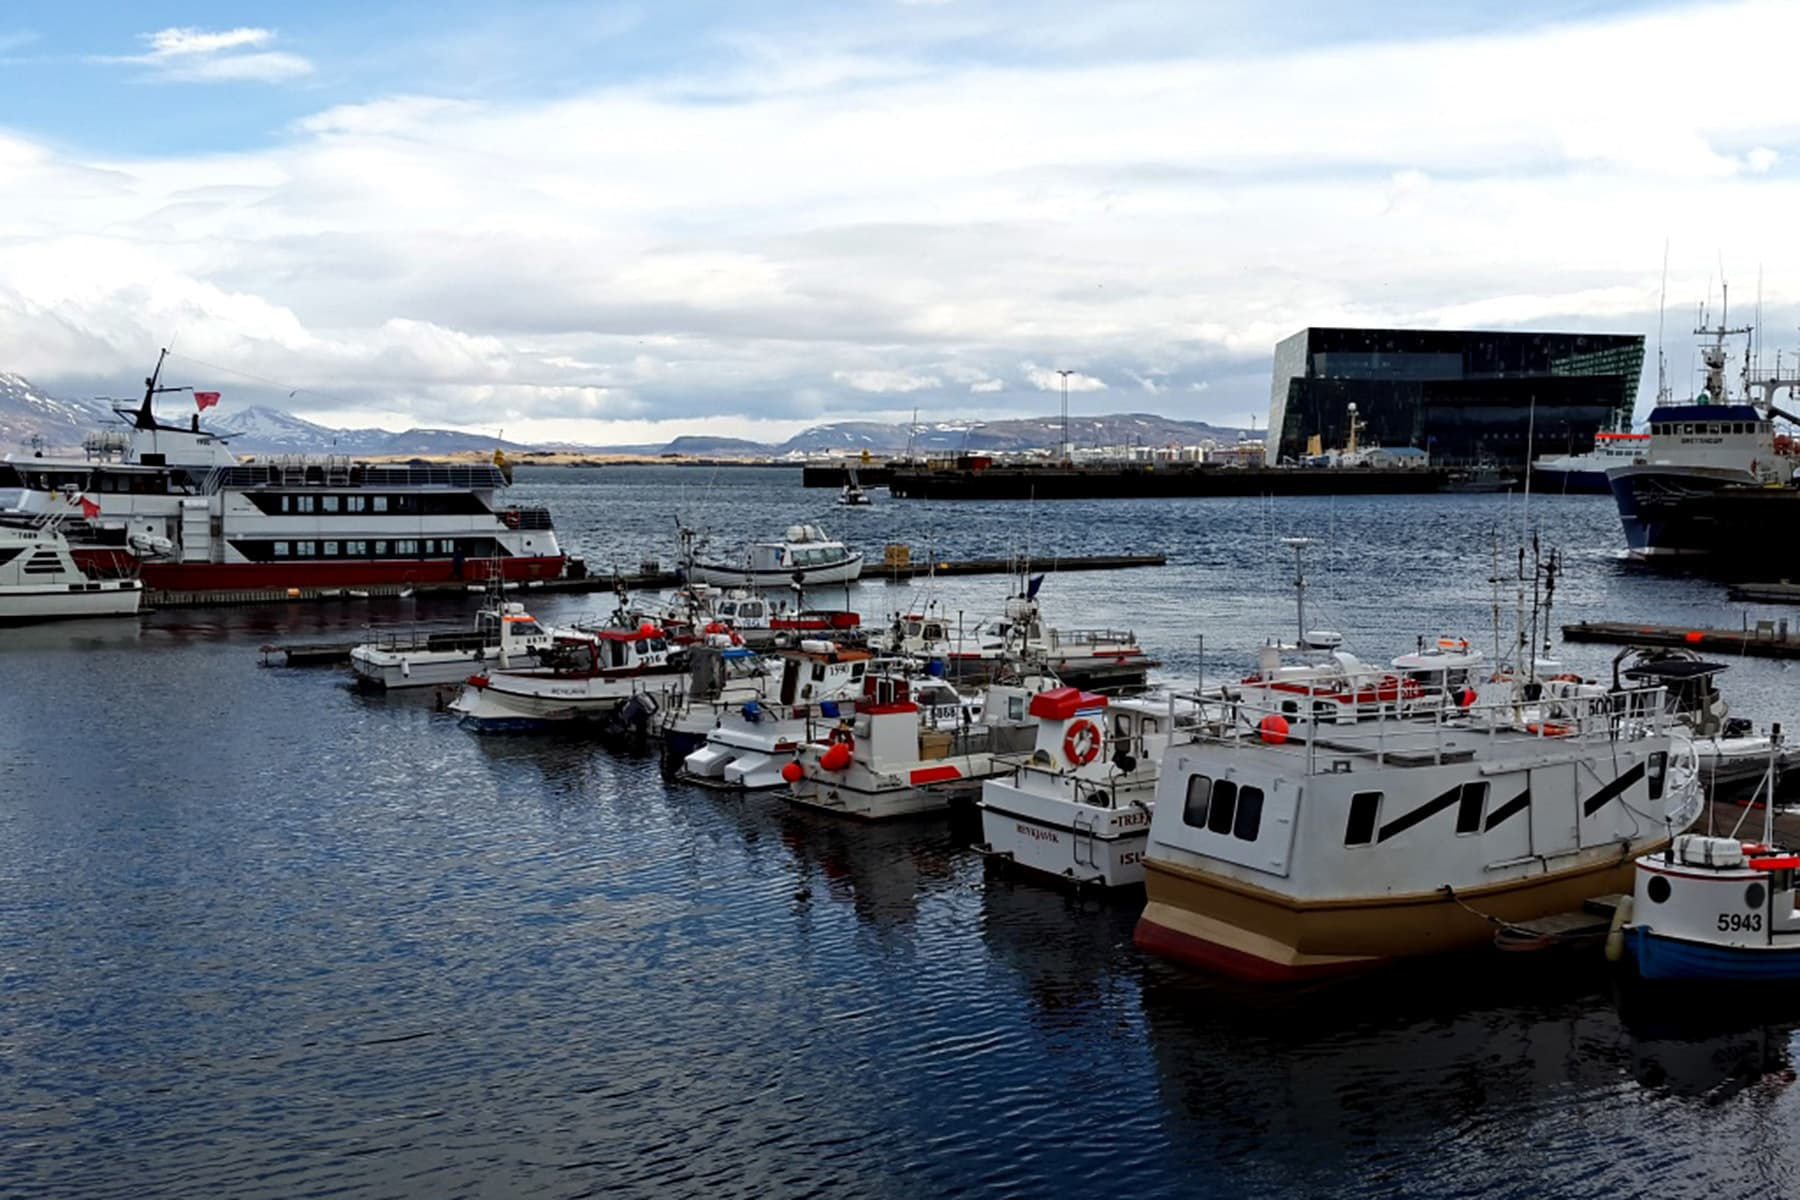 Reykjavik's old harbour overlooks the North Atlantic Ocean.